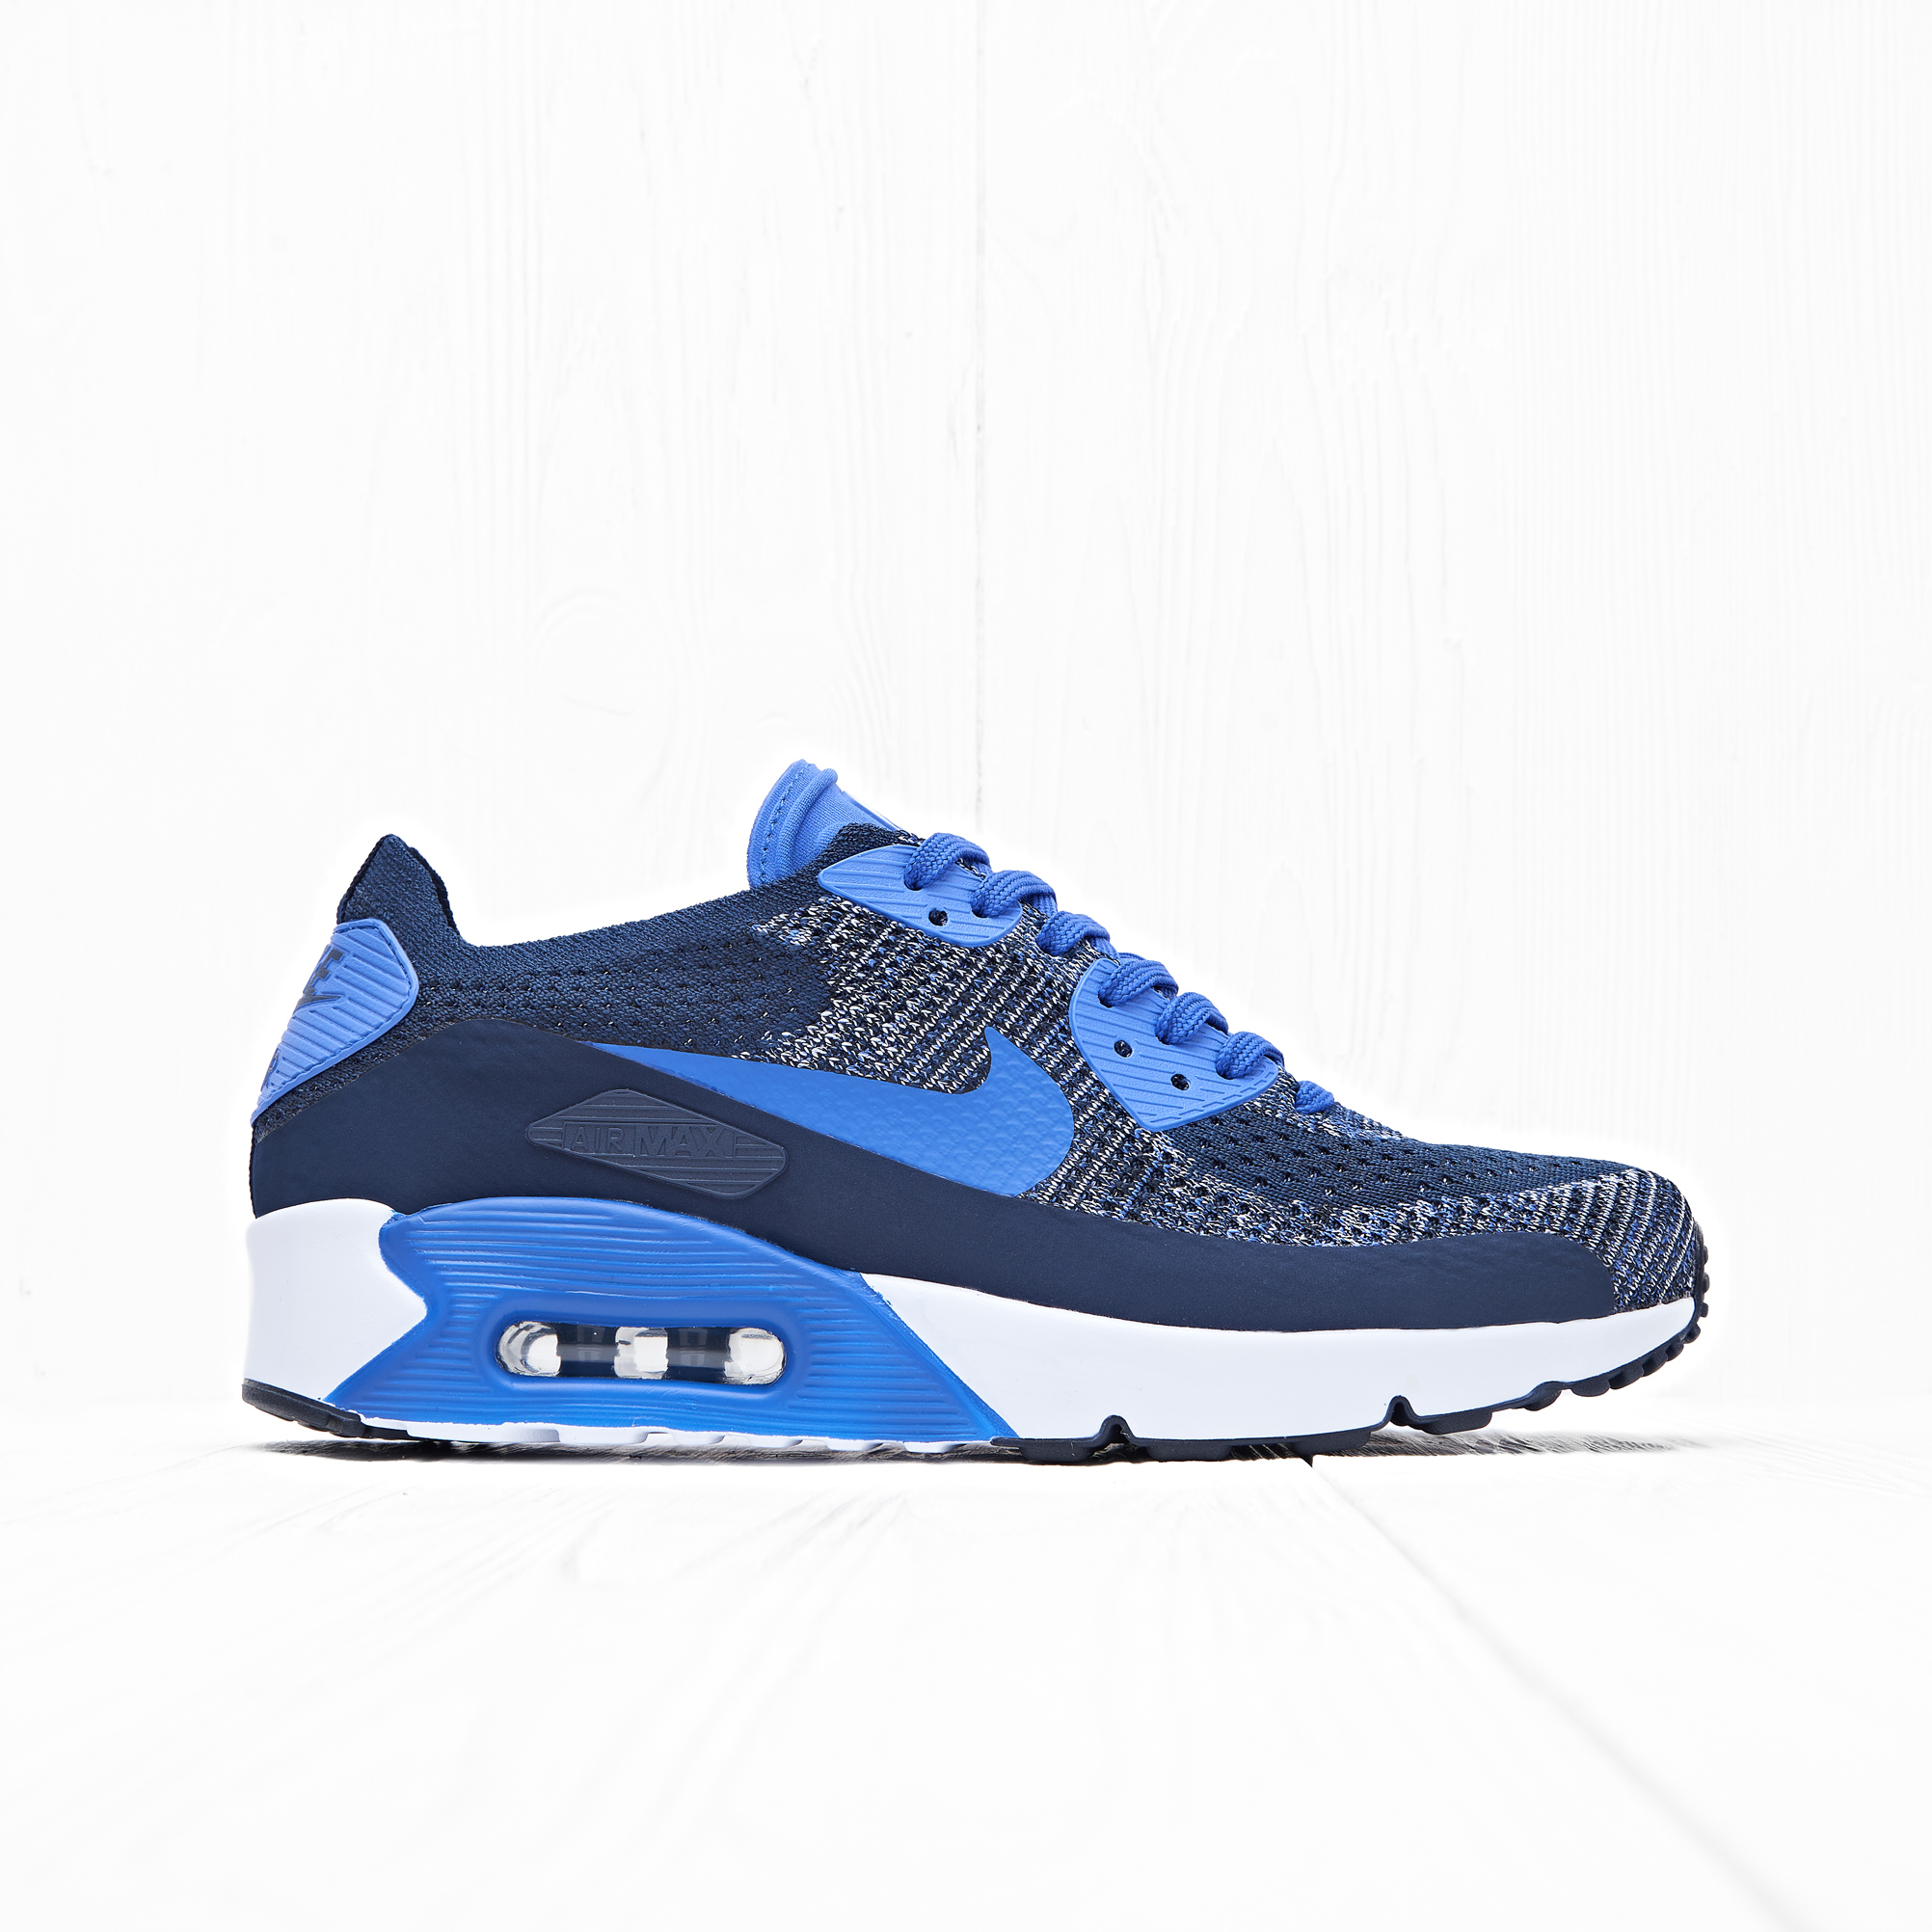 Кроссовки Nike AIR MAX 90 ULTRA 2.0 FLYKNIT College Navy/Paramount Blue-White